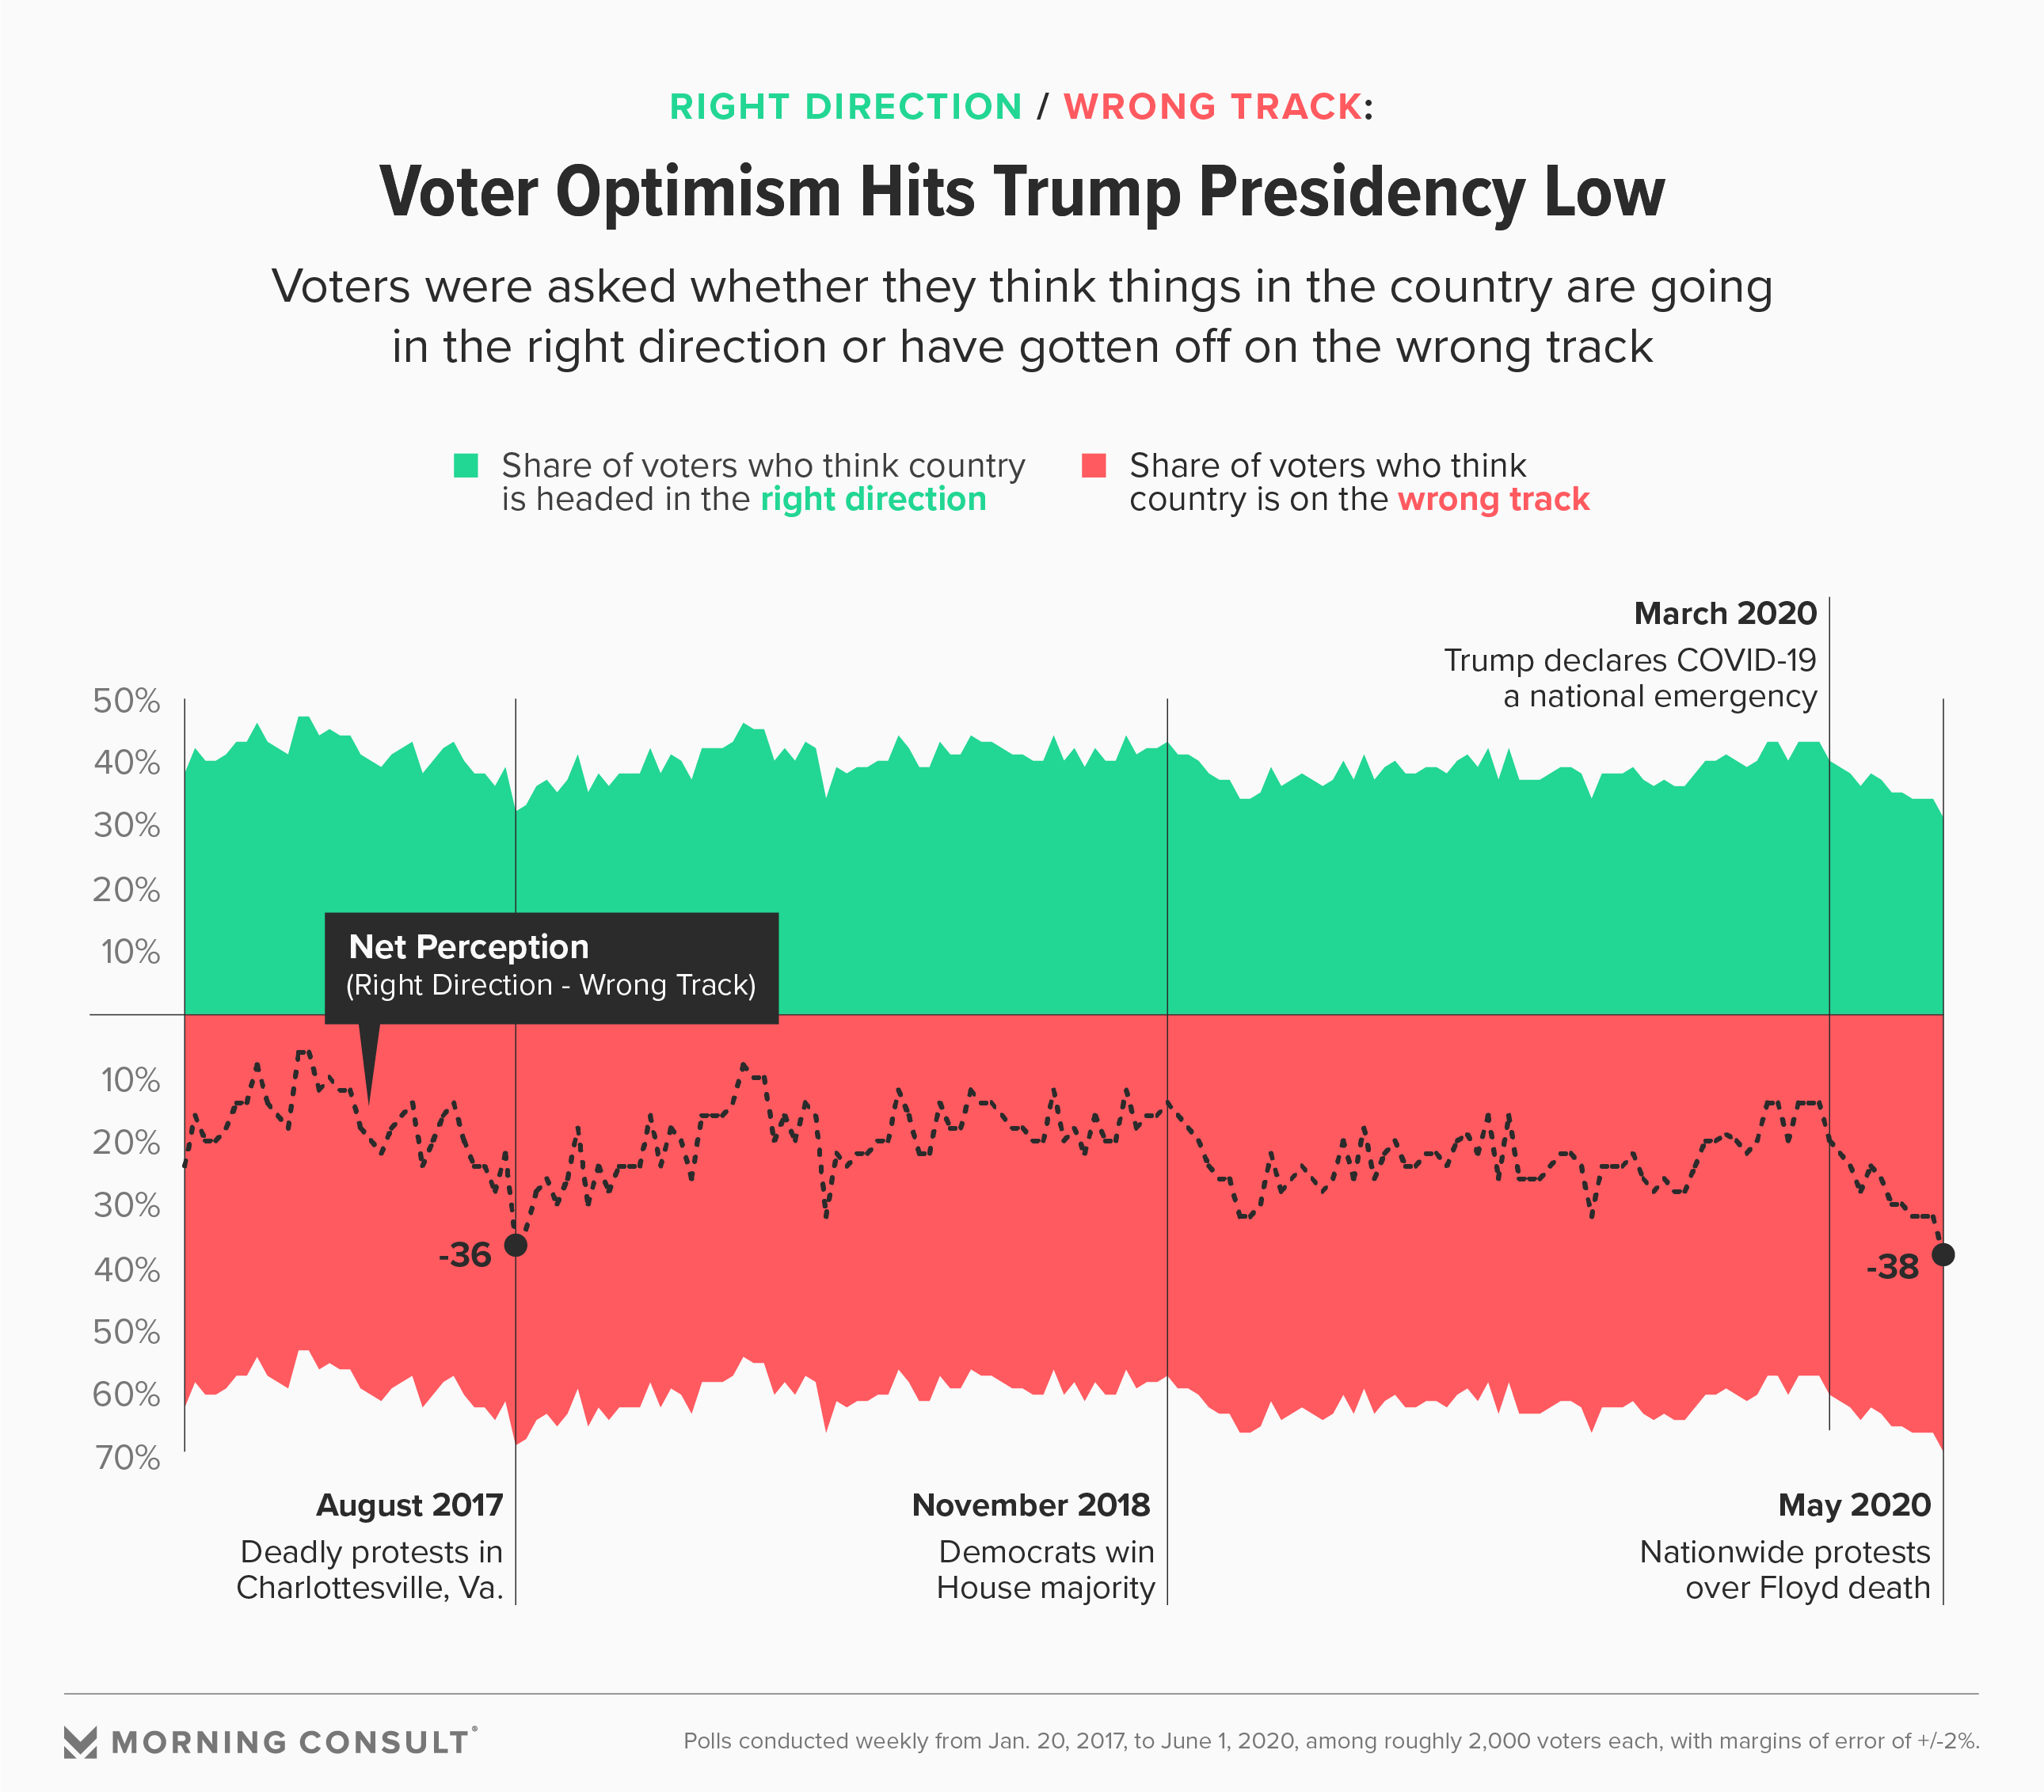 Voter Optimism Hits New Low of Trump Presidency Amid Pandemic and Protests  - Morning Consult